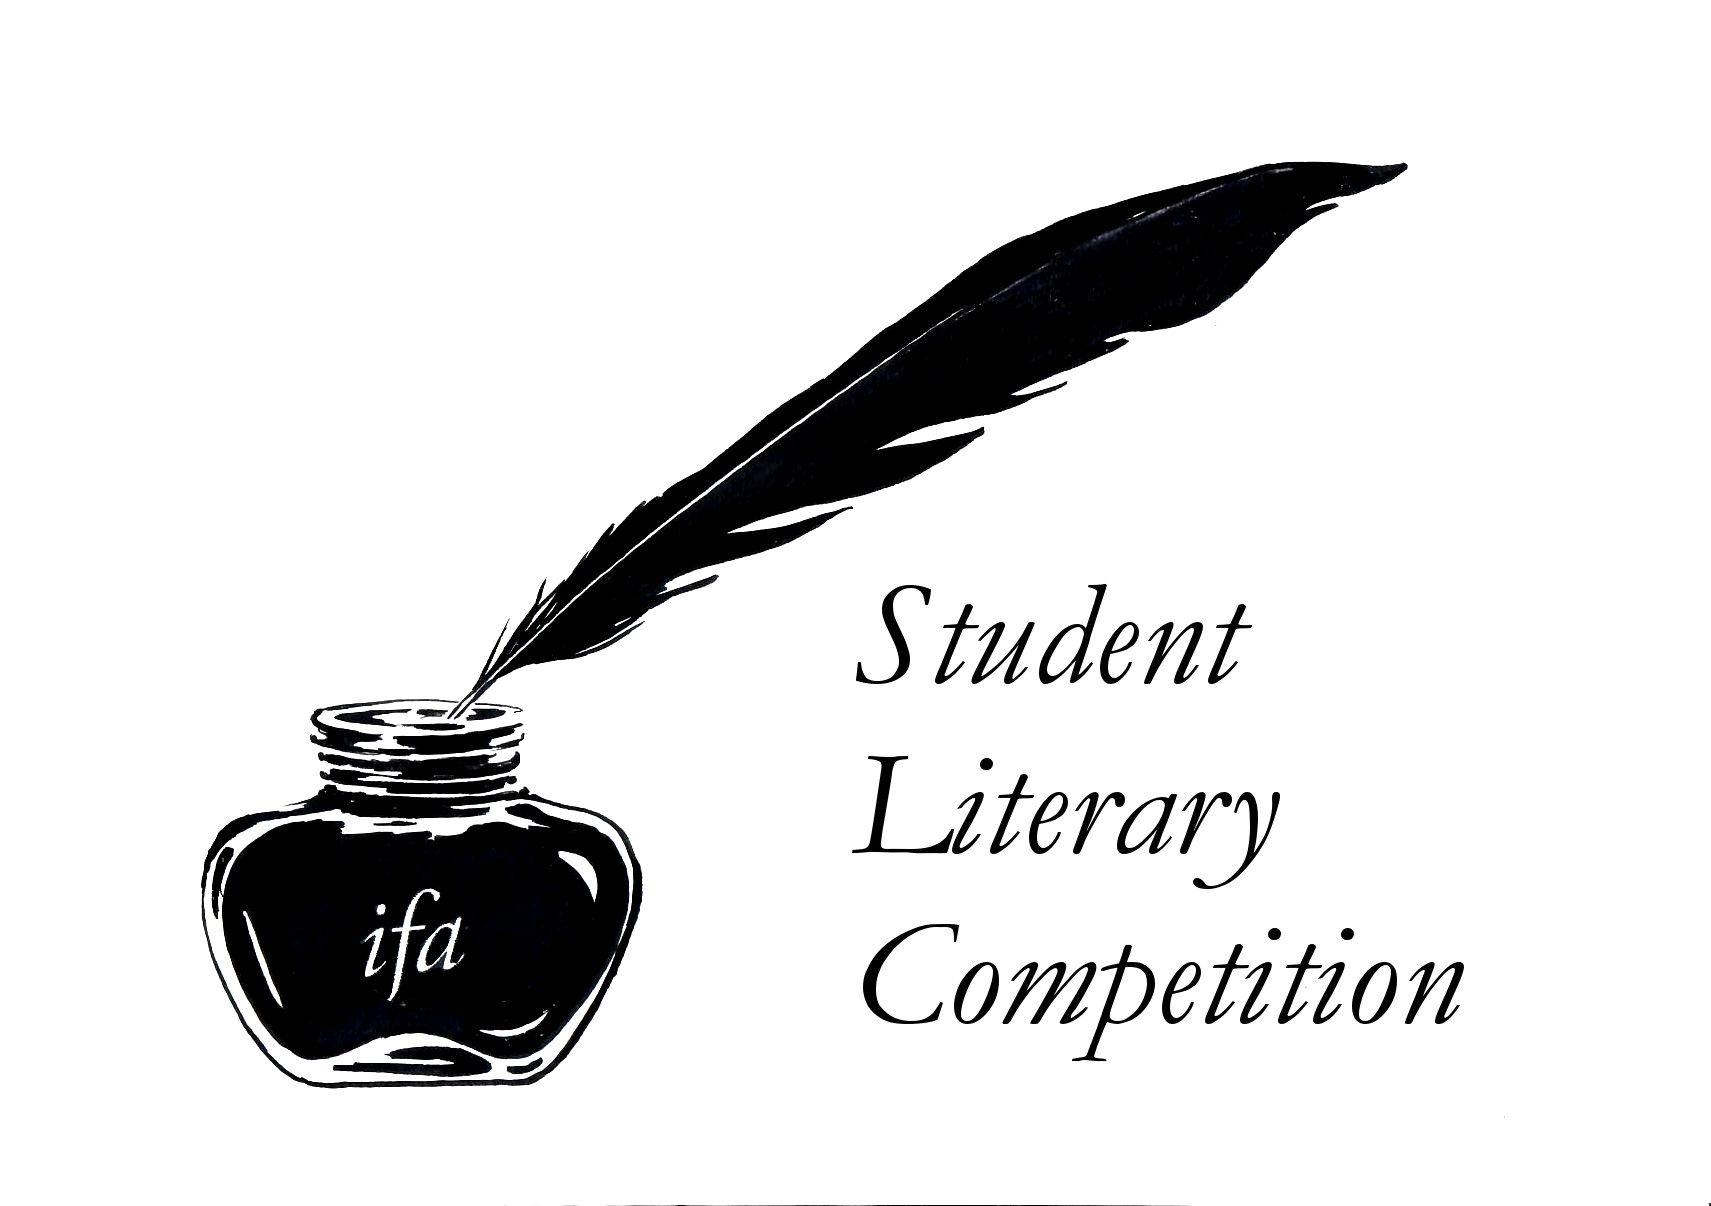 student_literary_competition_text2